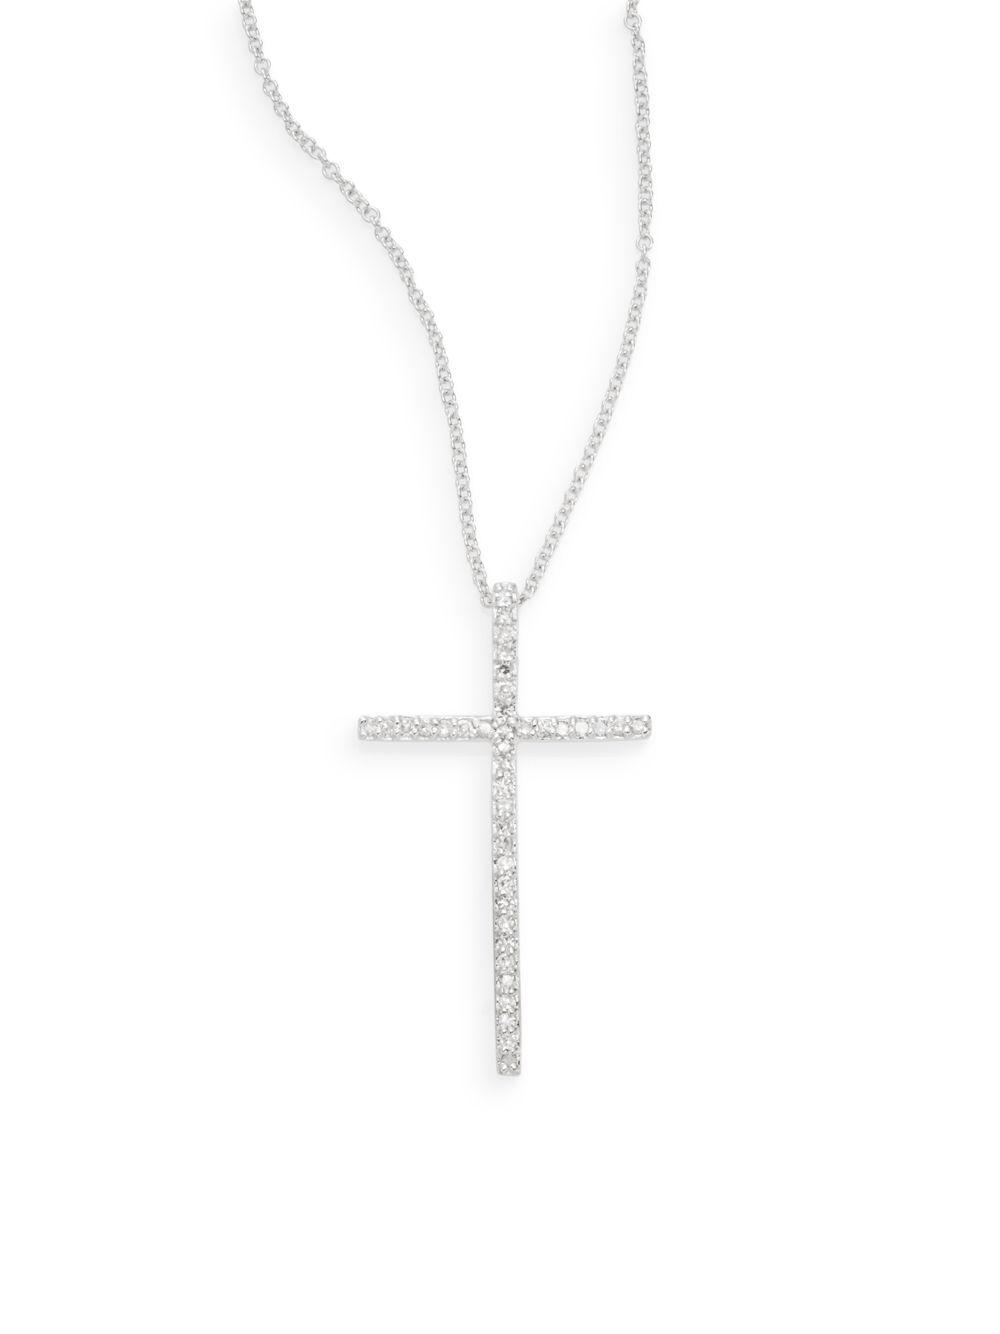 Lyst effy diamond 14k white gold cross pendant necklace in metallic aloadofball Image collections